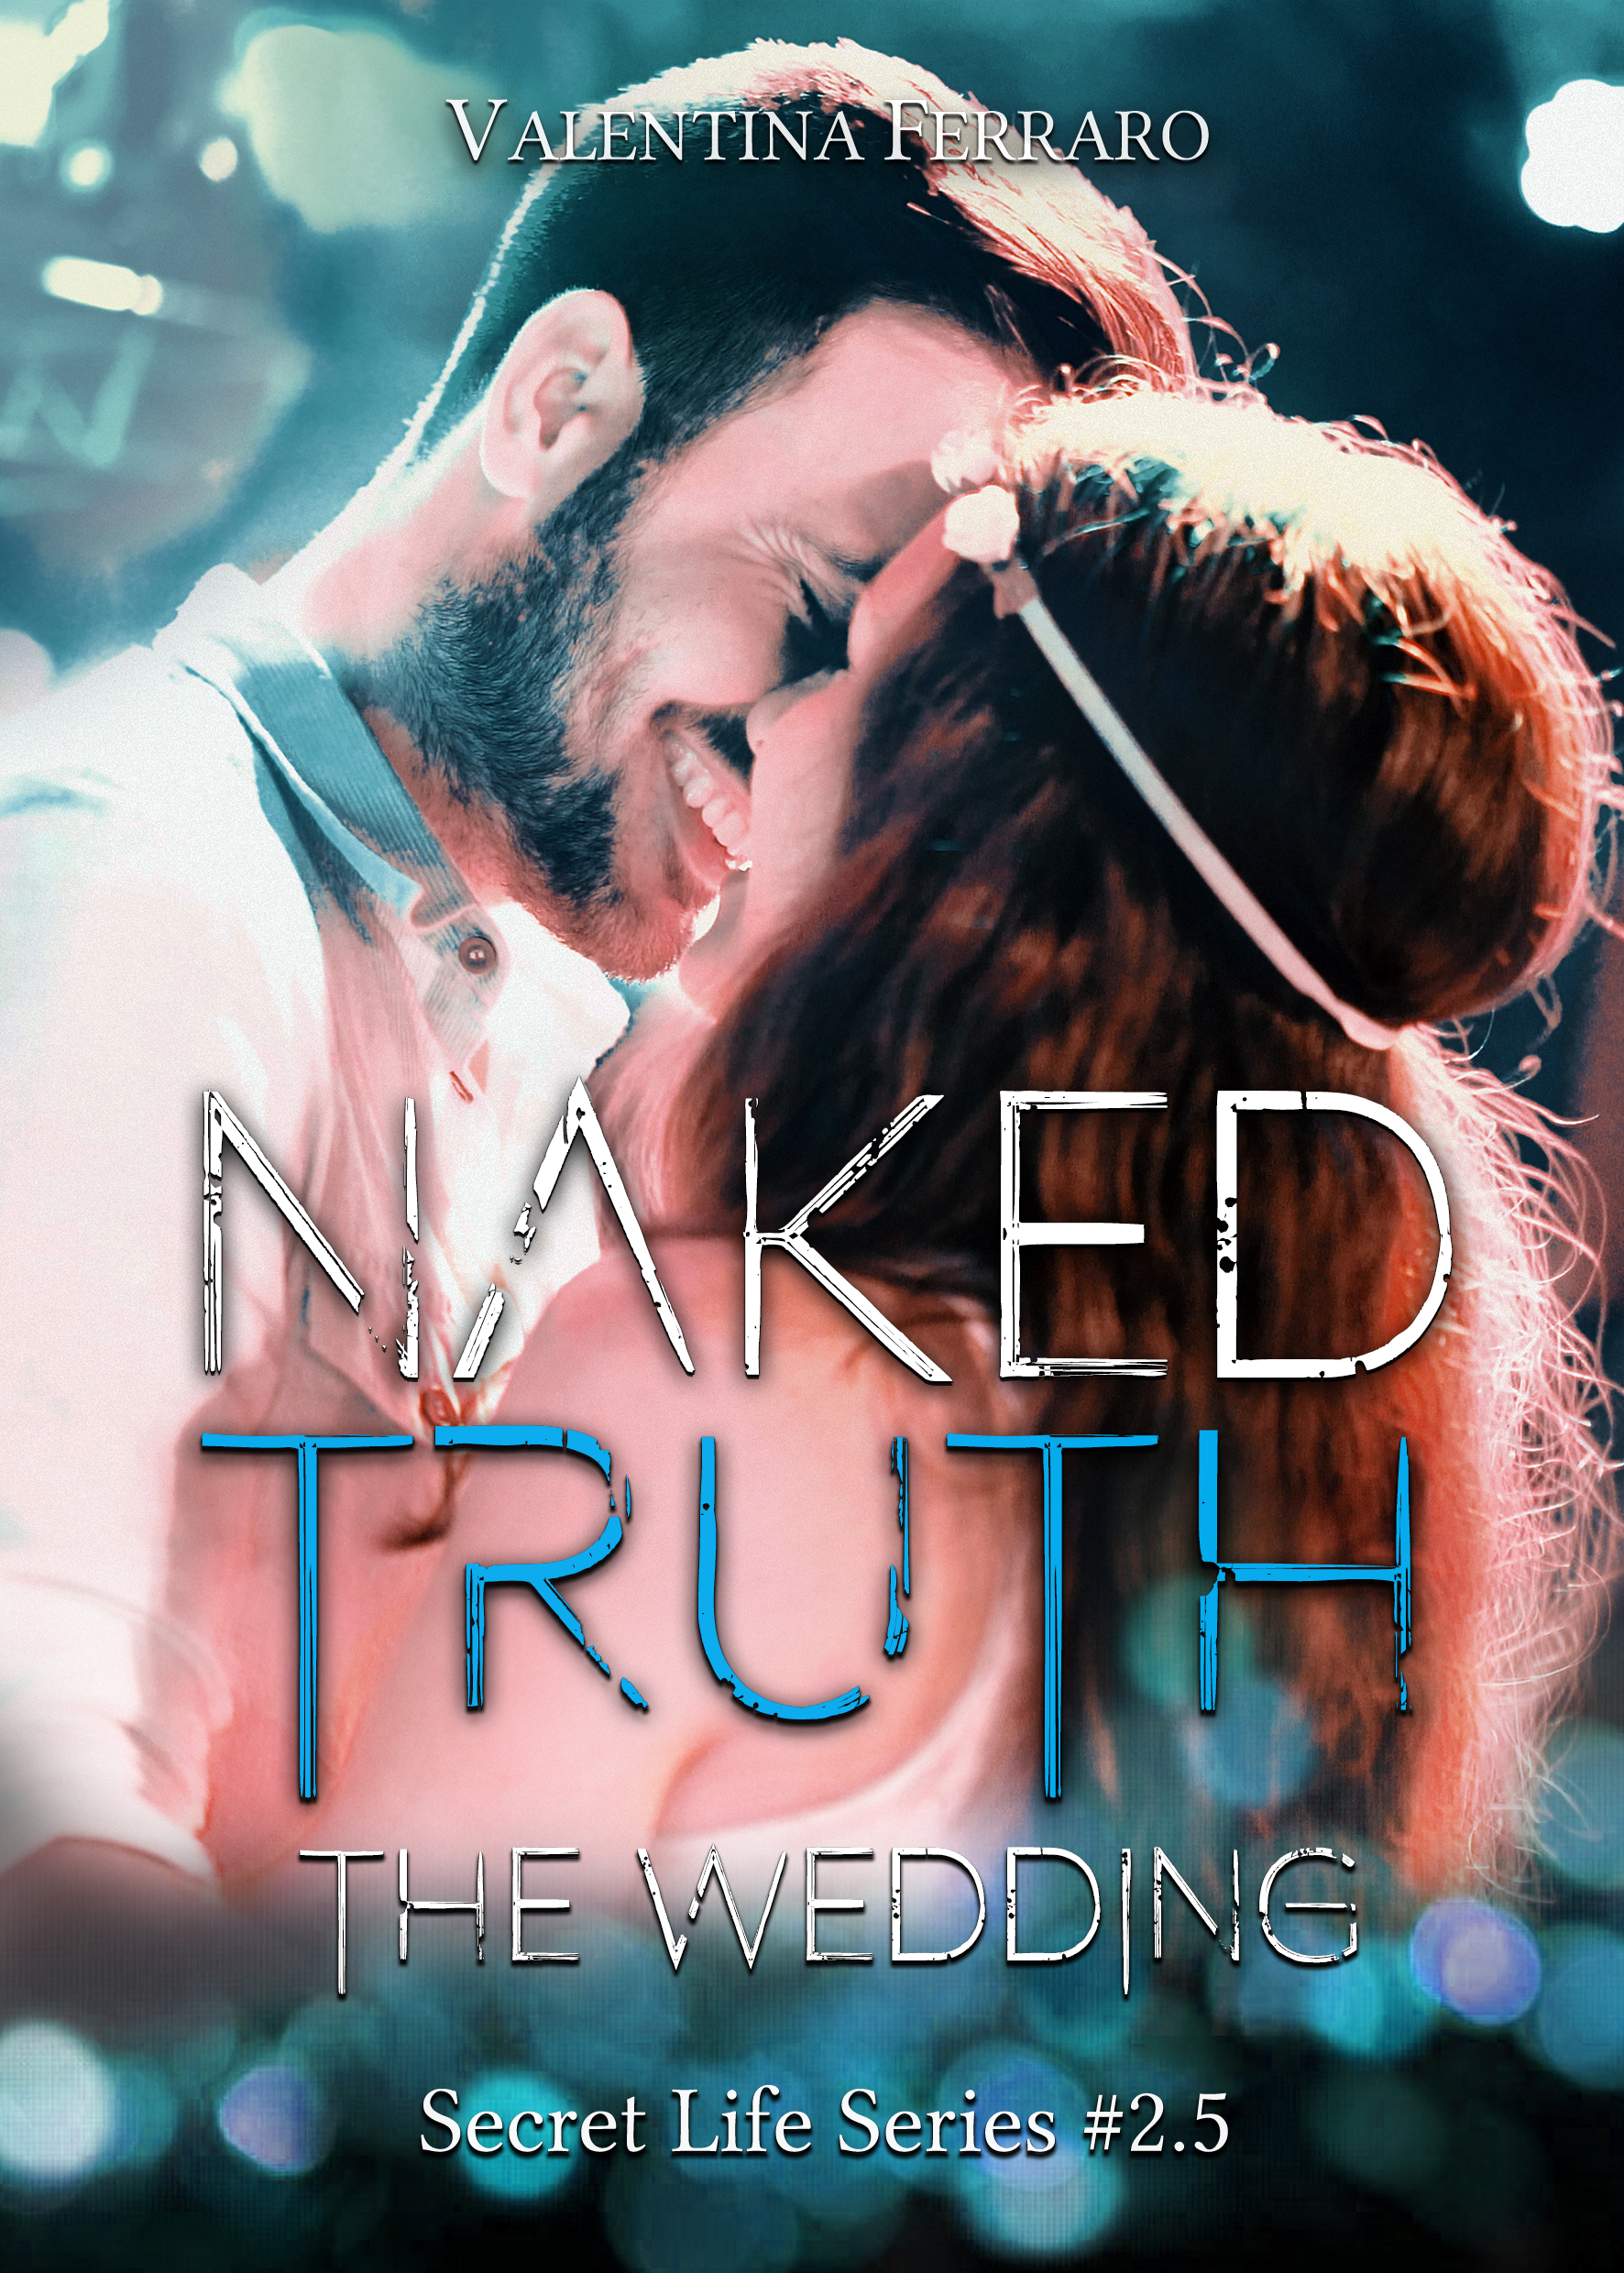 Naked Truth: The wedding